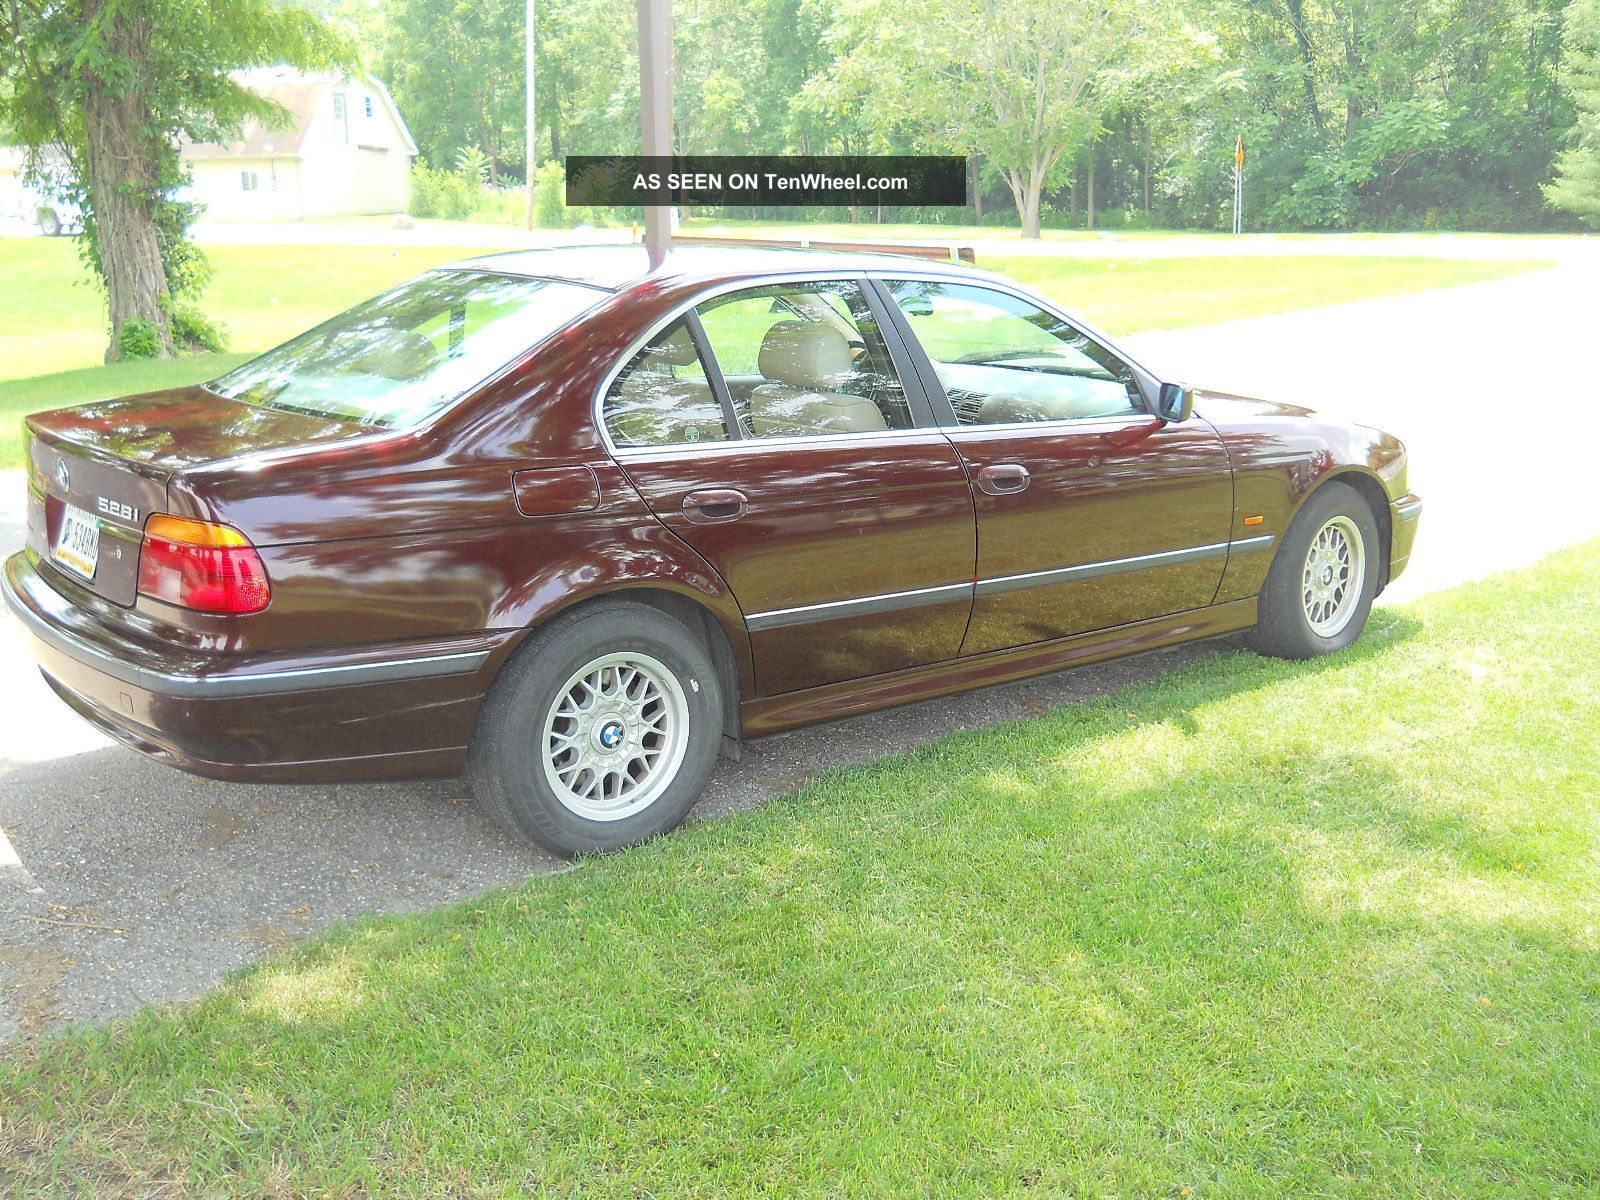 1997 Bmw 528i Excellent Condtion Maroon Exterior With Tan Interior 5-Series photo